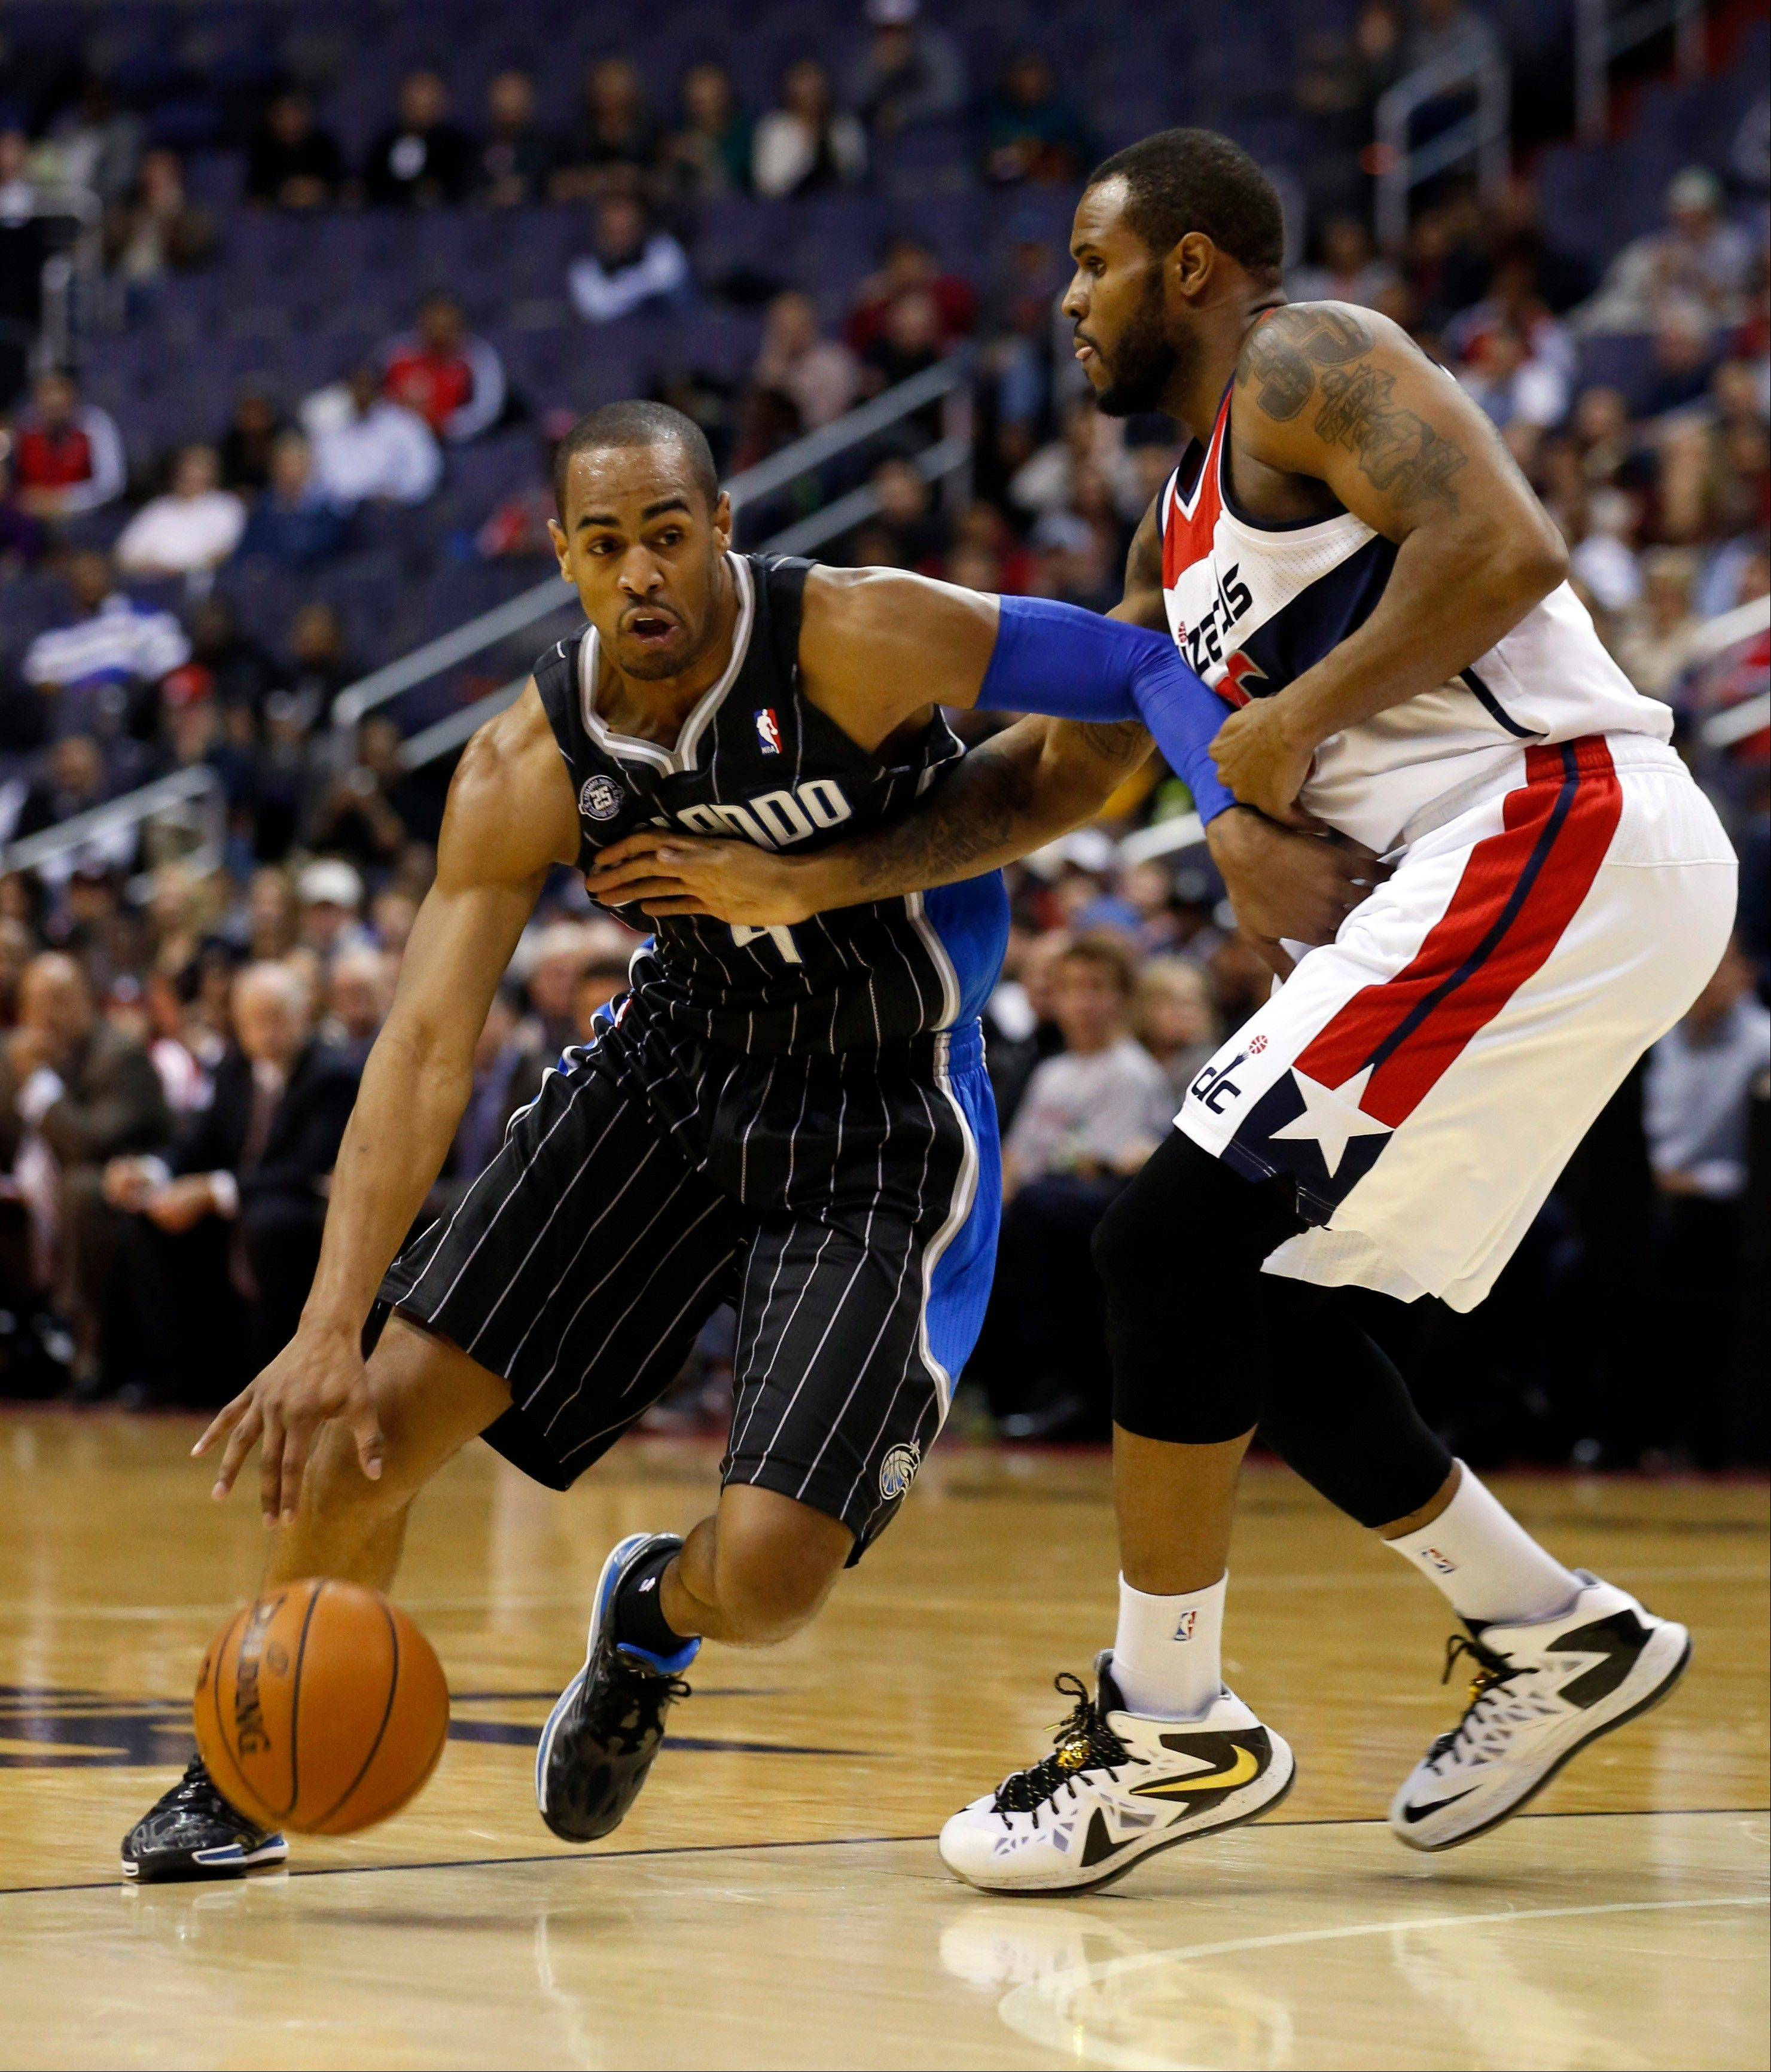 Orlando Magic shooting guard Arron Afflalo (4) drives past Washington Wizards forward Trevor Booker (35) in the first half of an NBA basketball game Monday in Washington.